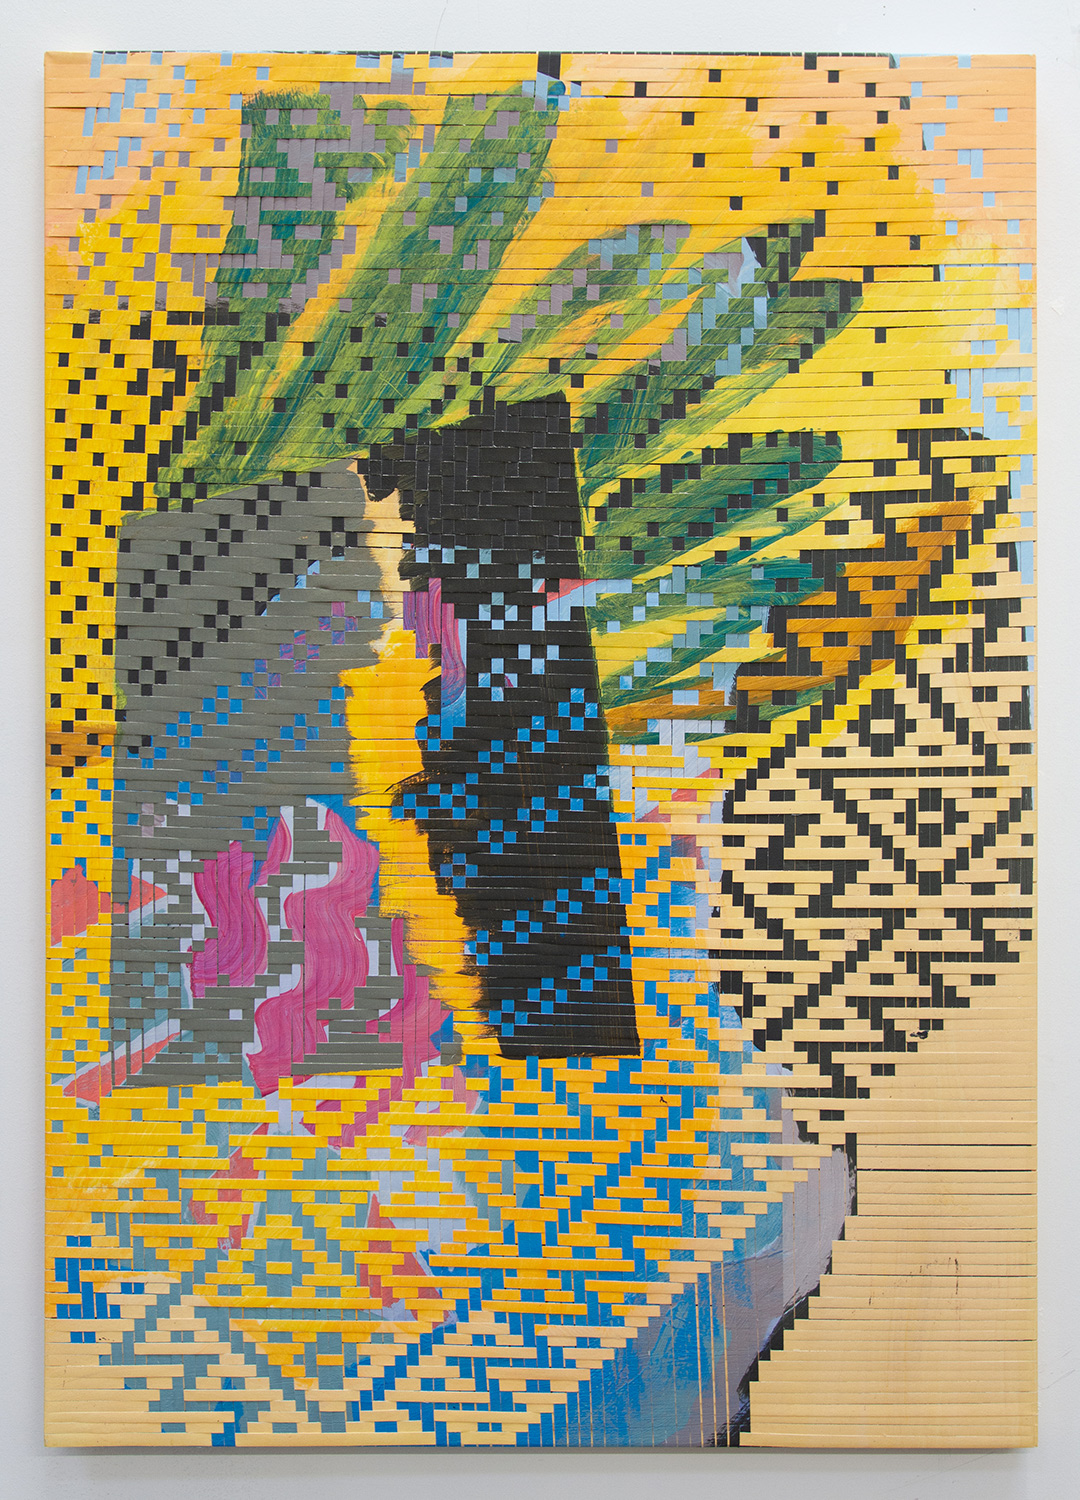 pineapple, 2019, woven inkjet print on canvas, 48 x 34in.